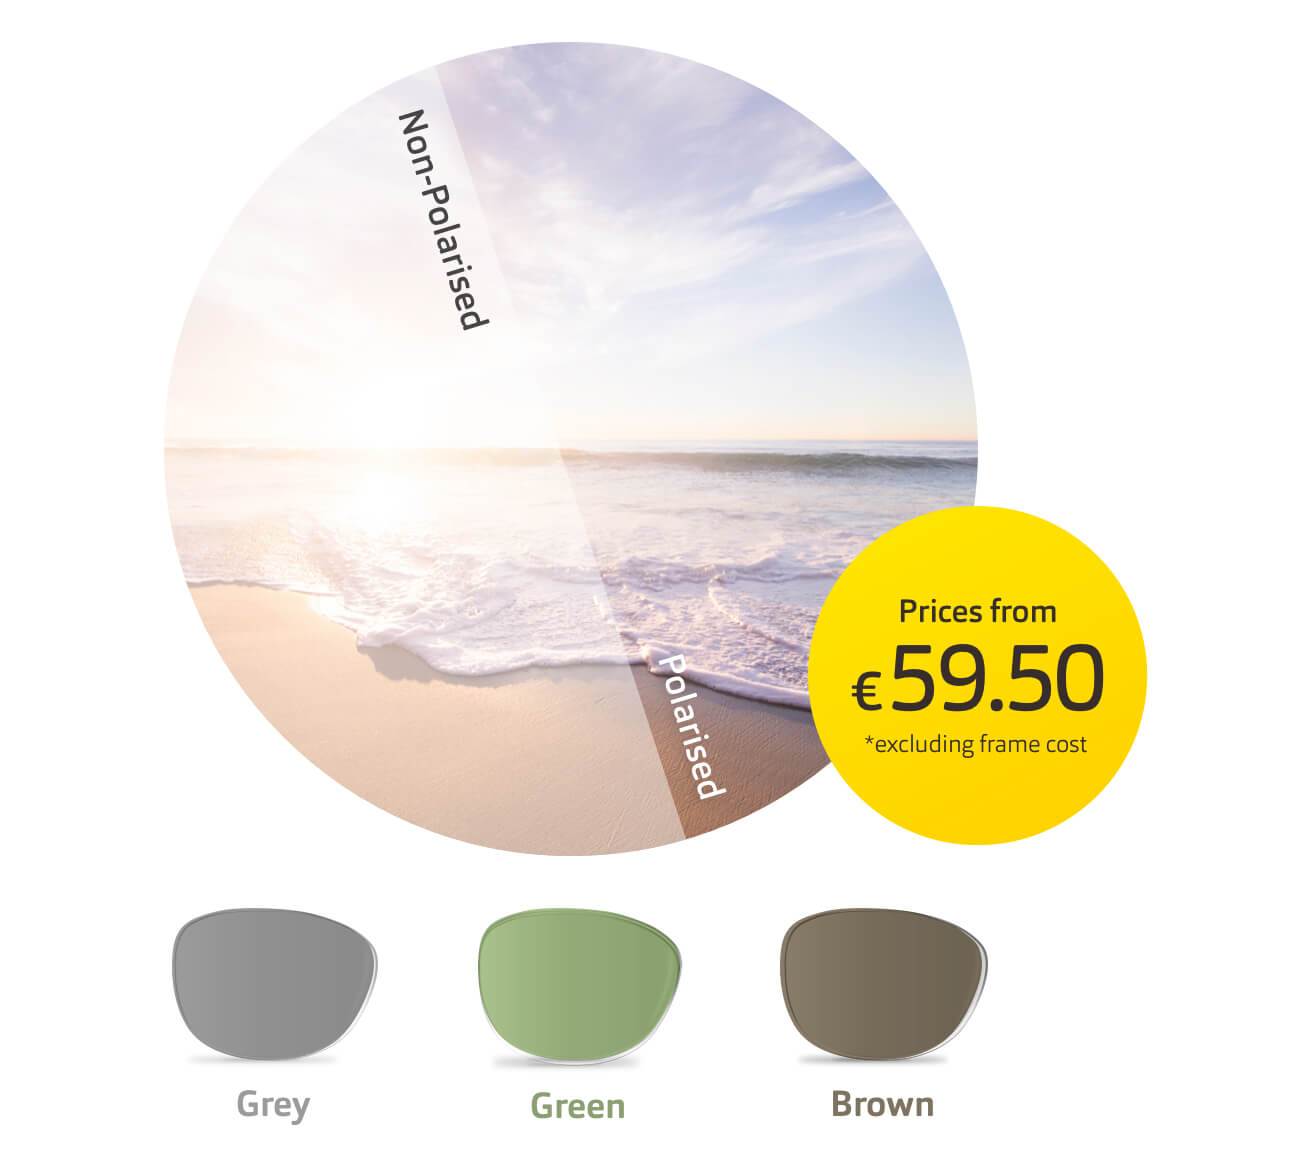 Circular image of beach, sea and sky showing effect of polarised lenses. Grey, green and brown lenses appear below.